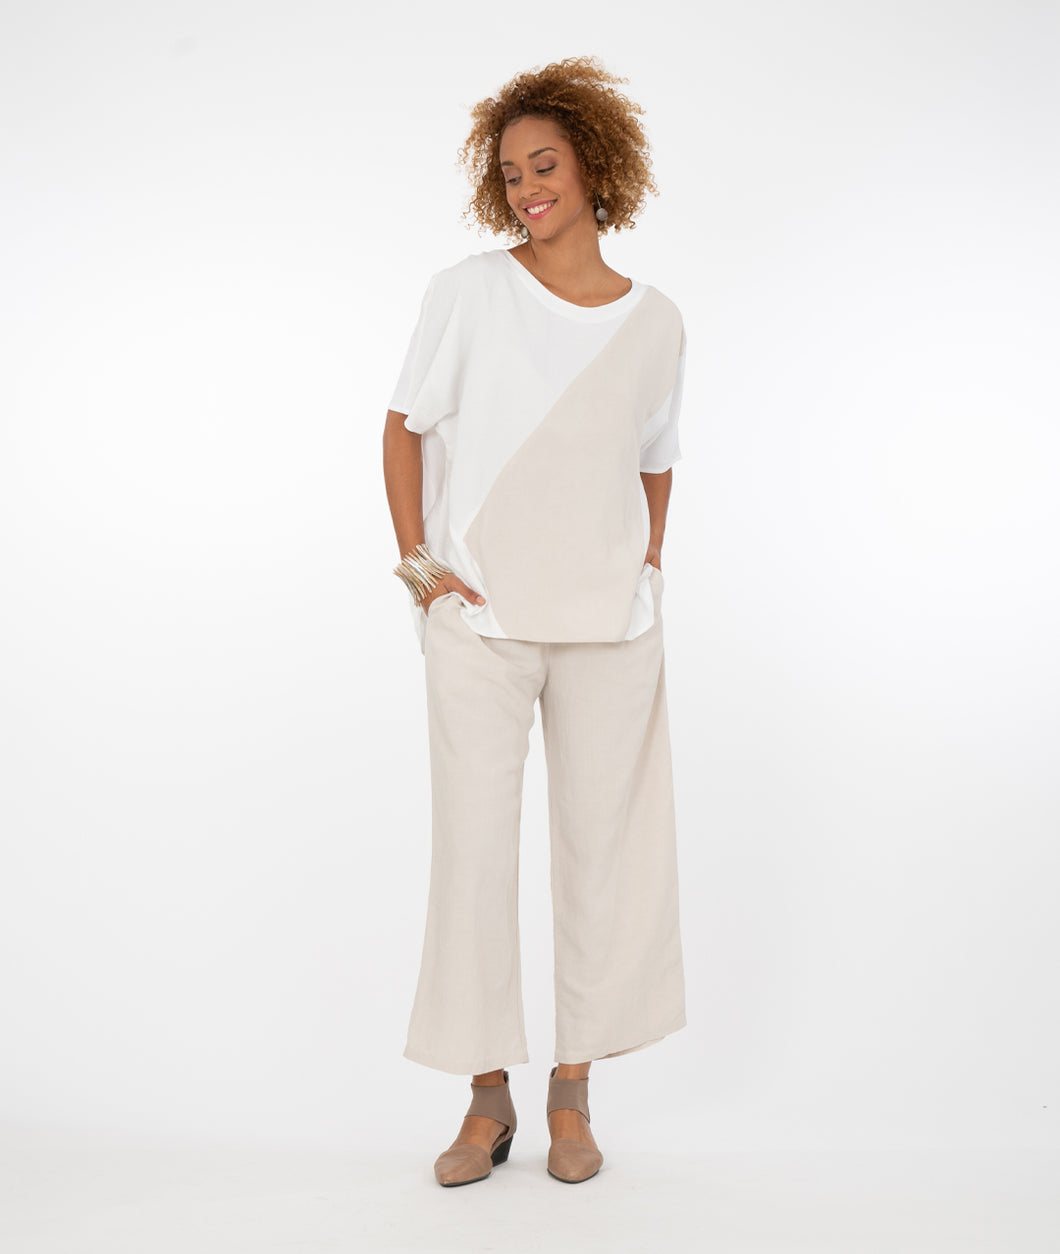 model in a white and bone color blocked top with matching bone pants, in front of a white background